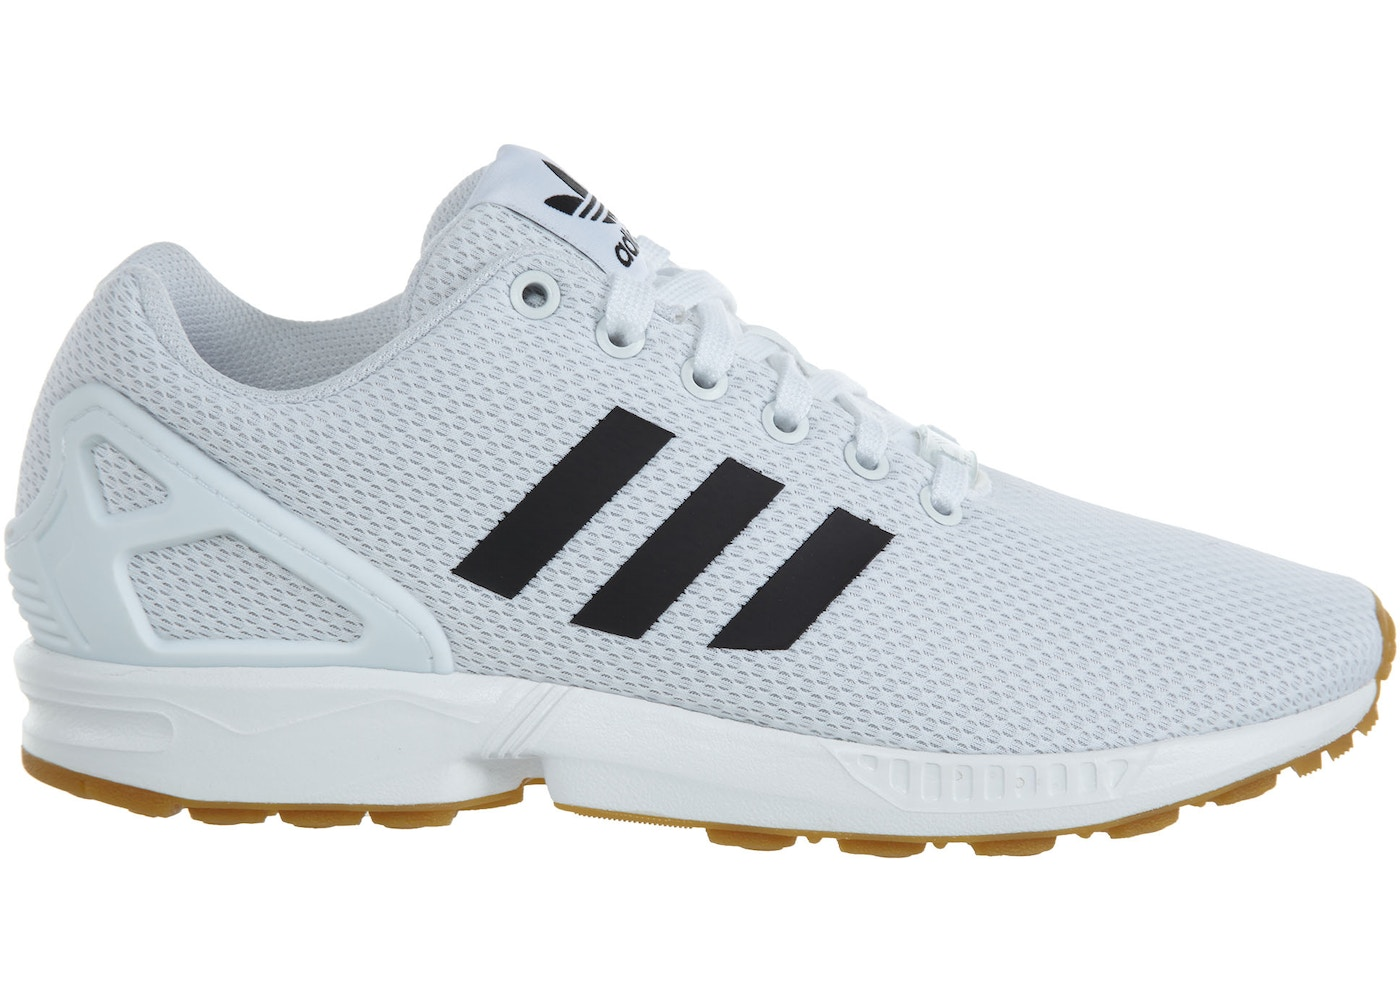 3e634d849f Sell. or Ask. Size --. View All Bids. adidas Zx Flux White/Black-Gum3